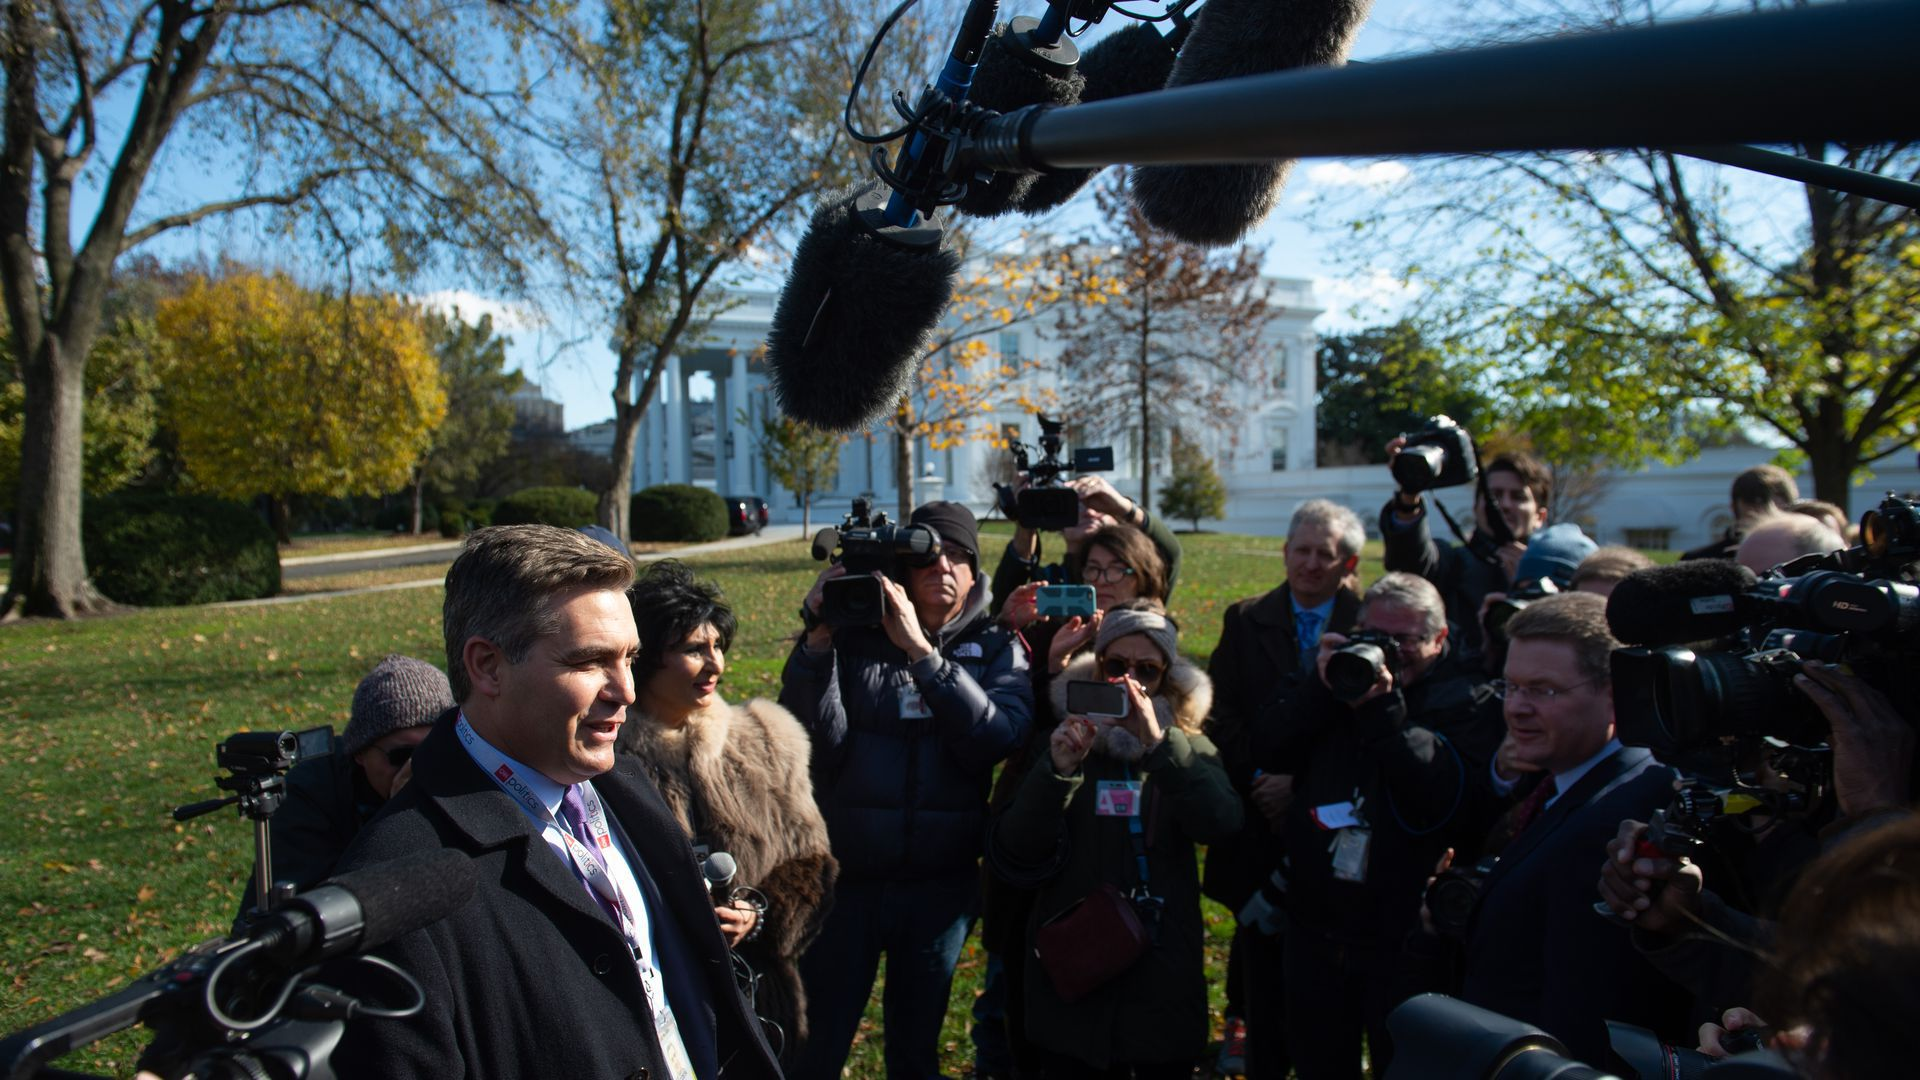 Jim Acosta stands before the press outside of the White House